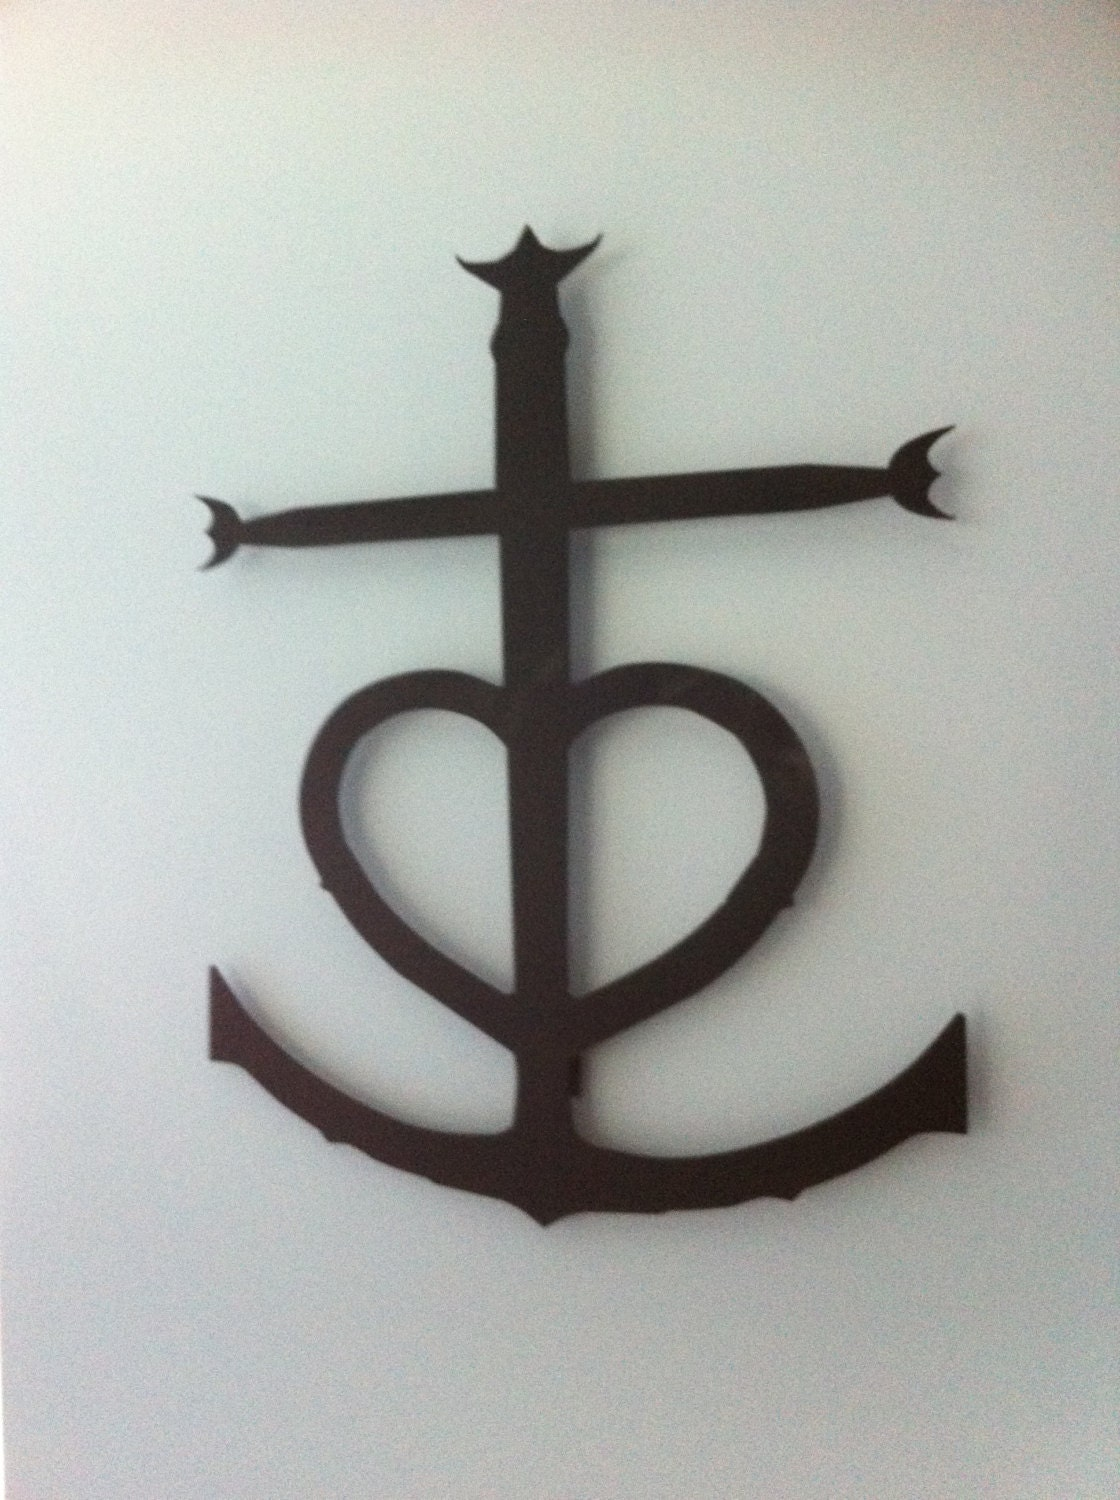 Cross heart anchor wall hanging approx 24 tall by metalandlights